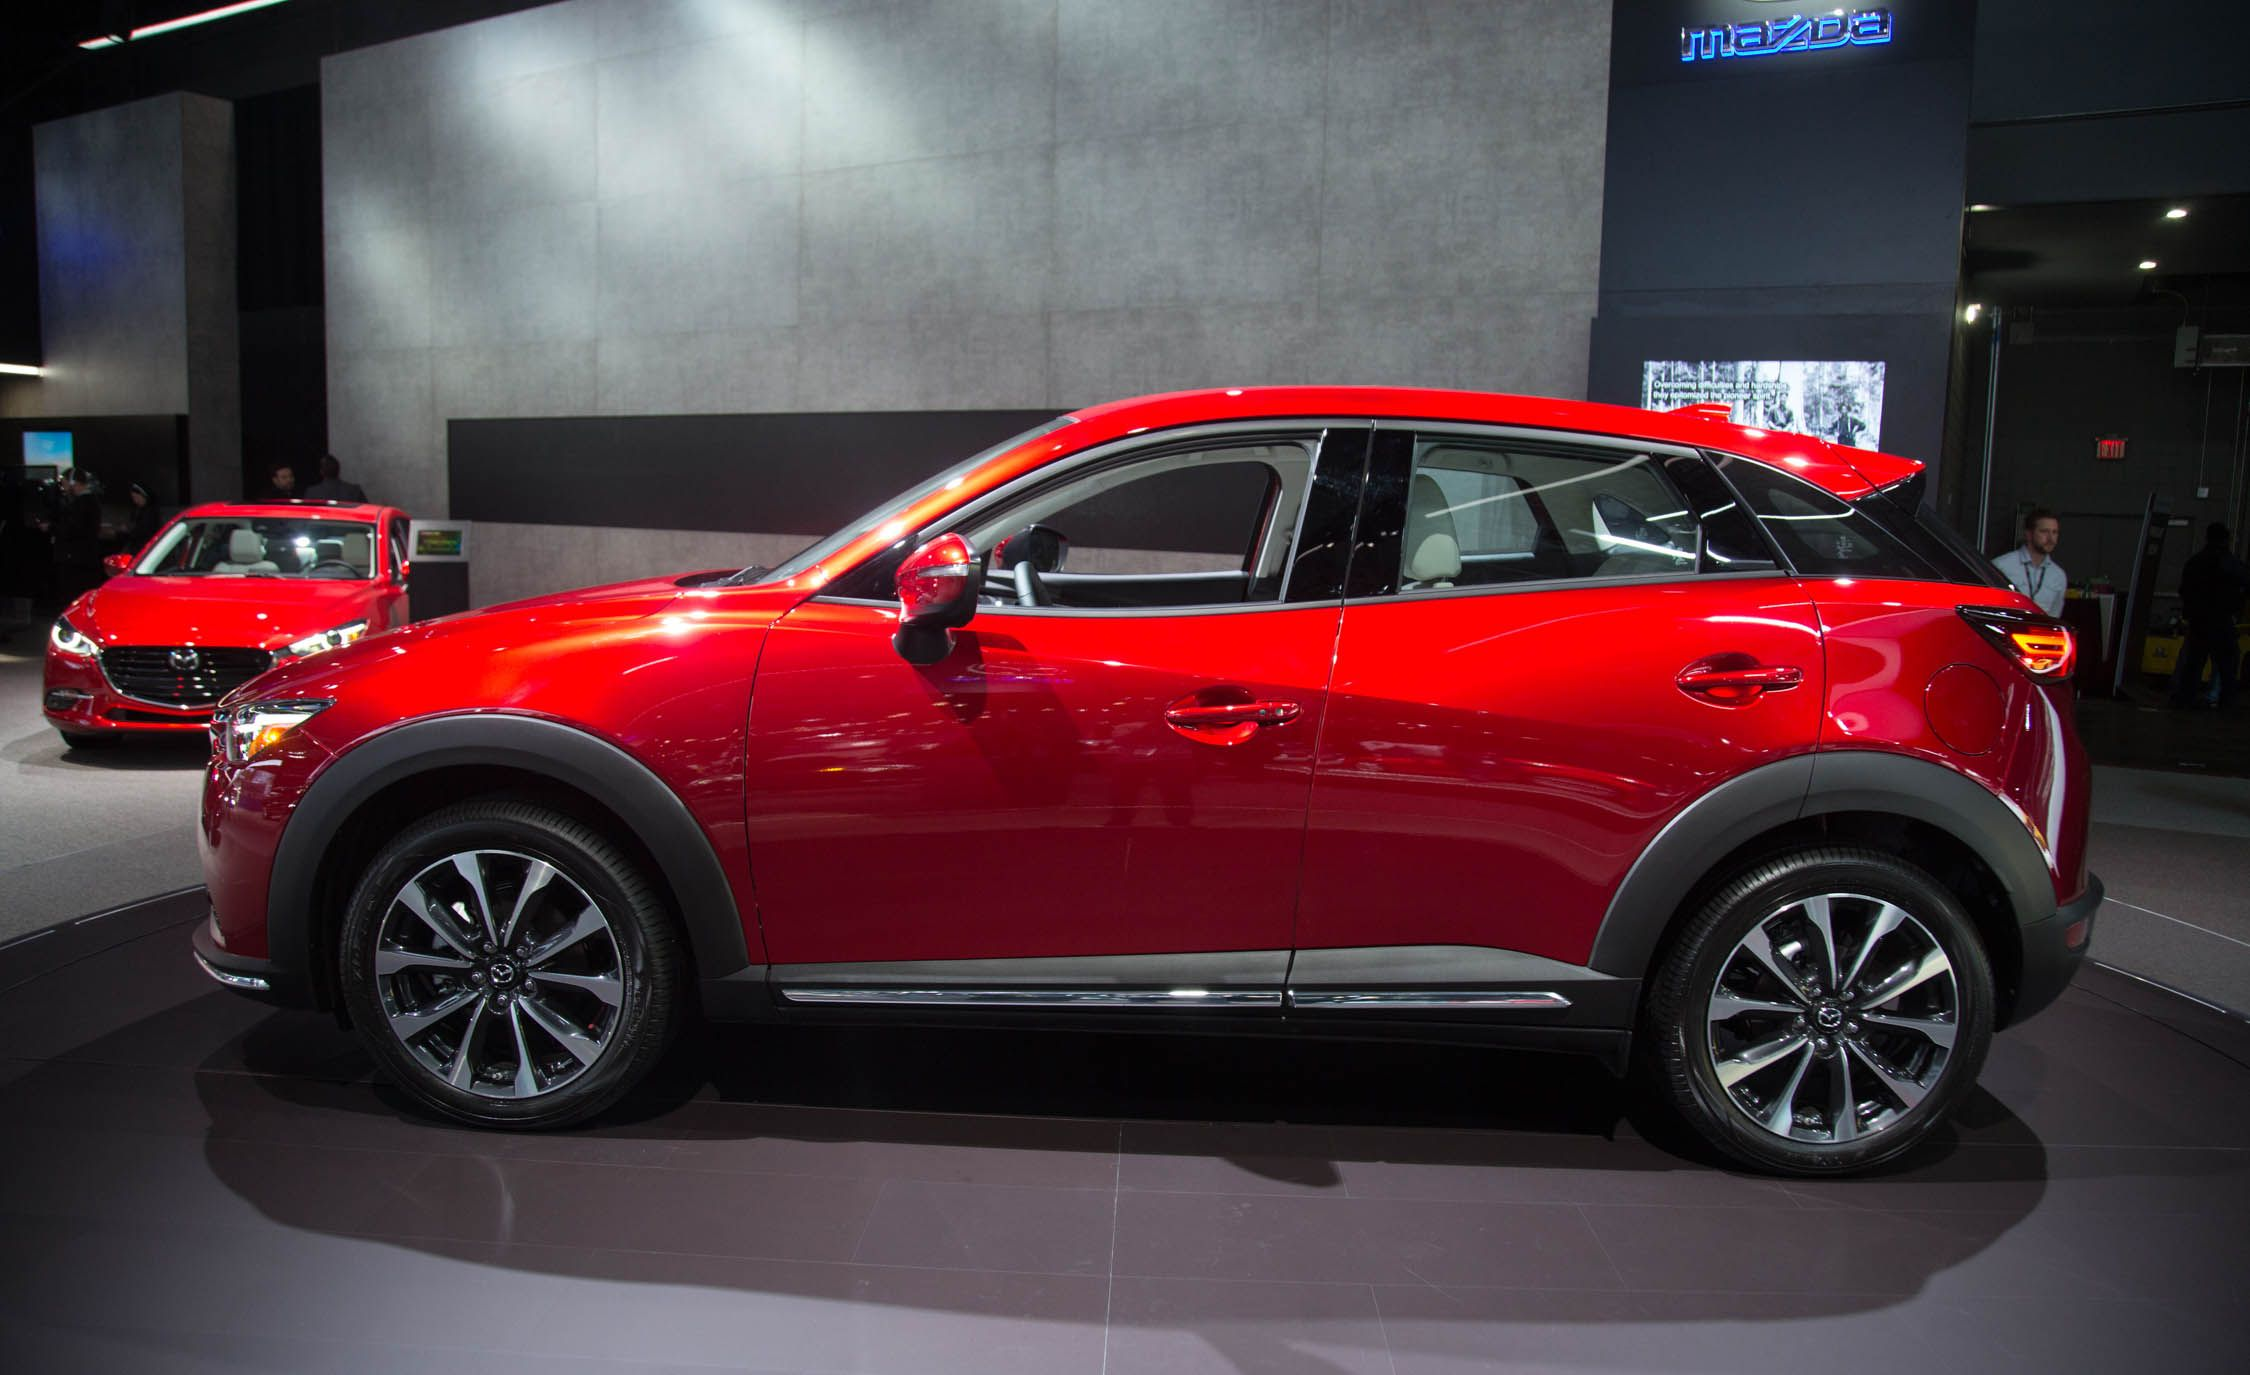 unveils car guide mazda the cx en articles finally